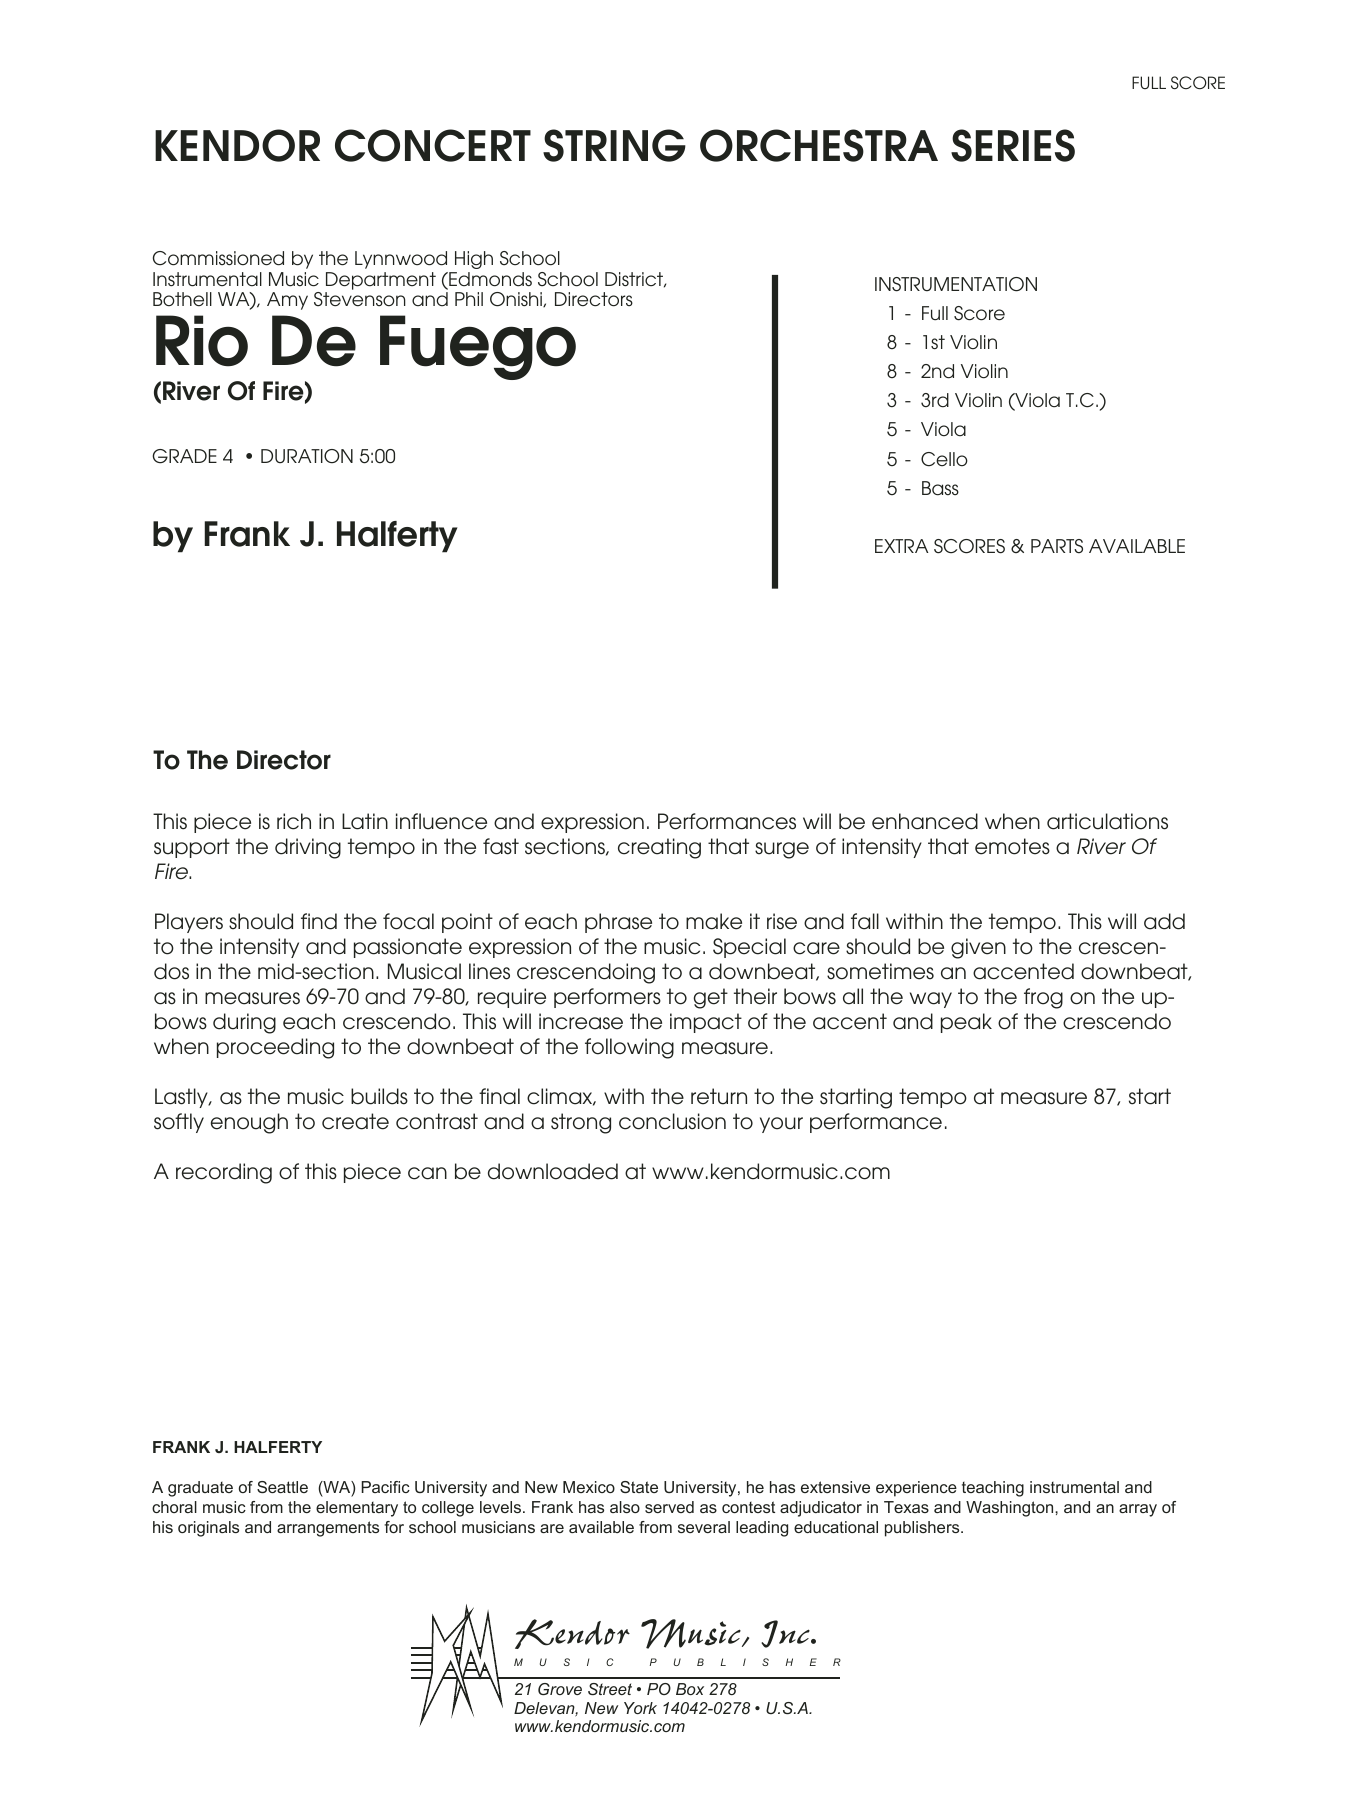 Rio De Fuego (River Of Fire) (COMPLETE) sheet music for orchestra by Frank J. Halferty. Score Image Preview.